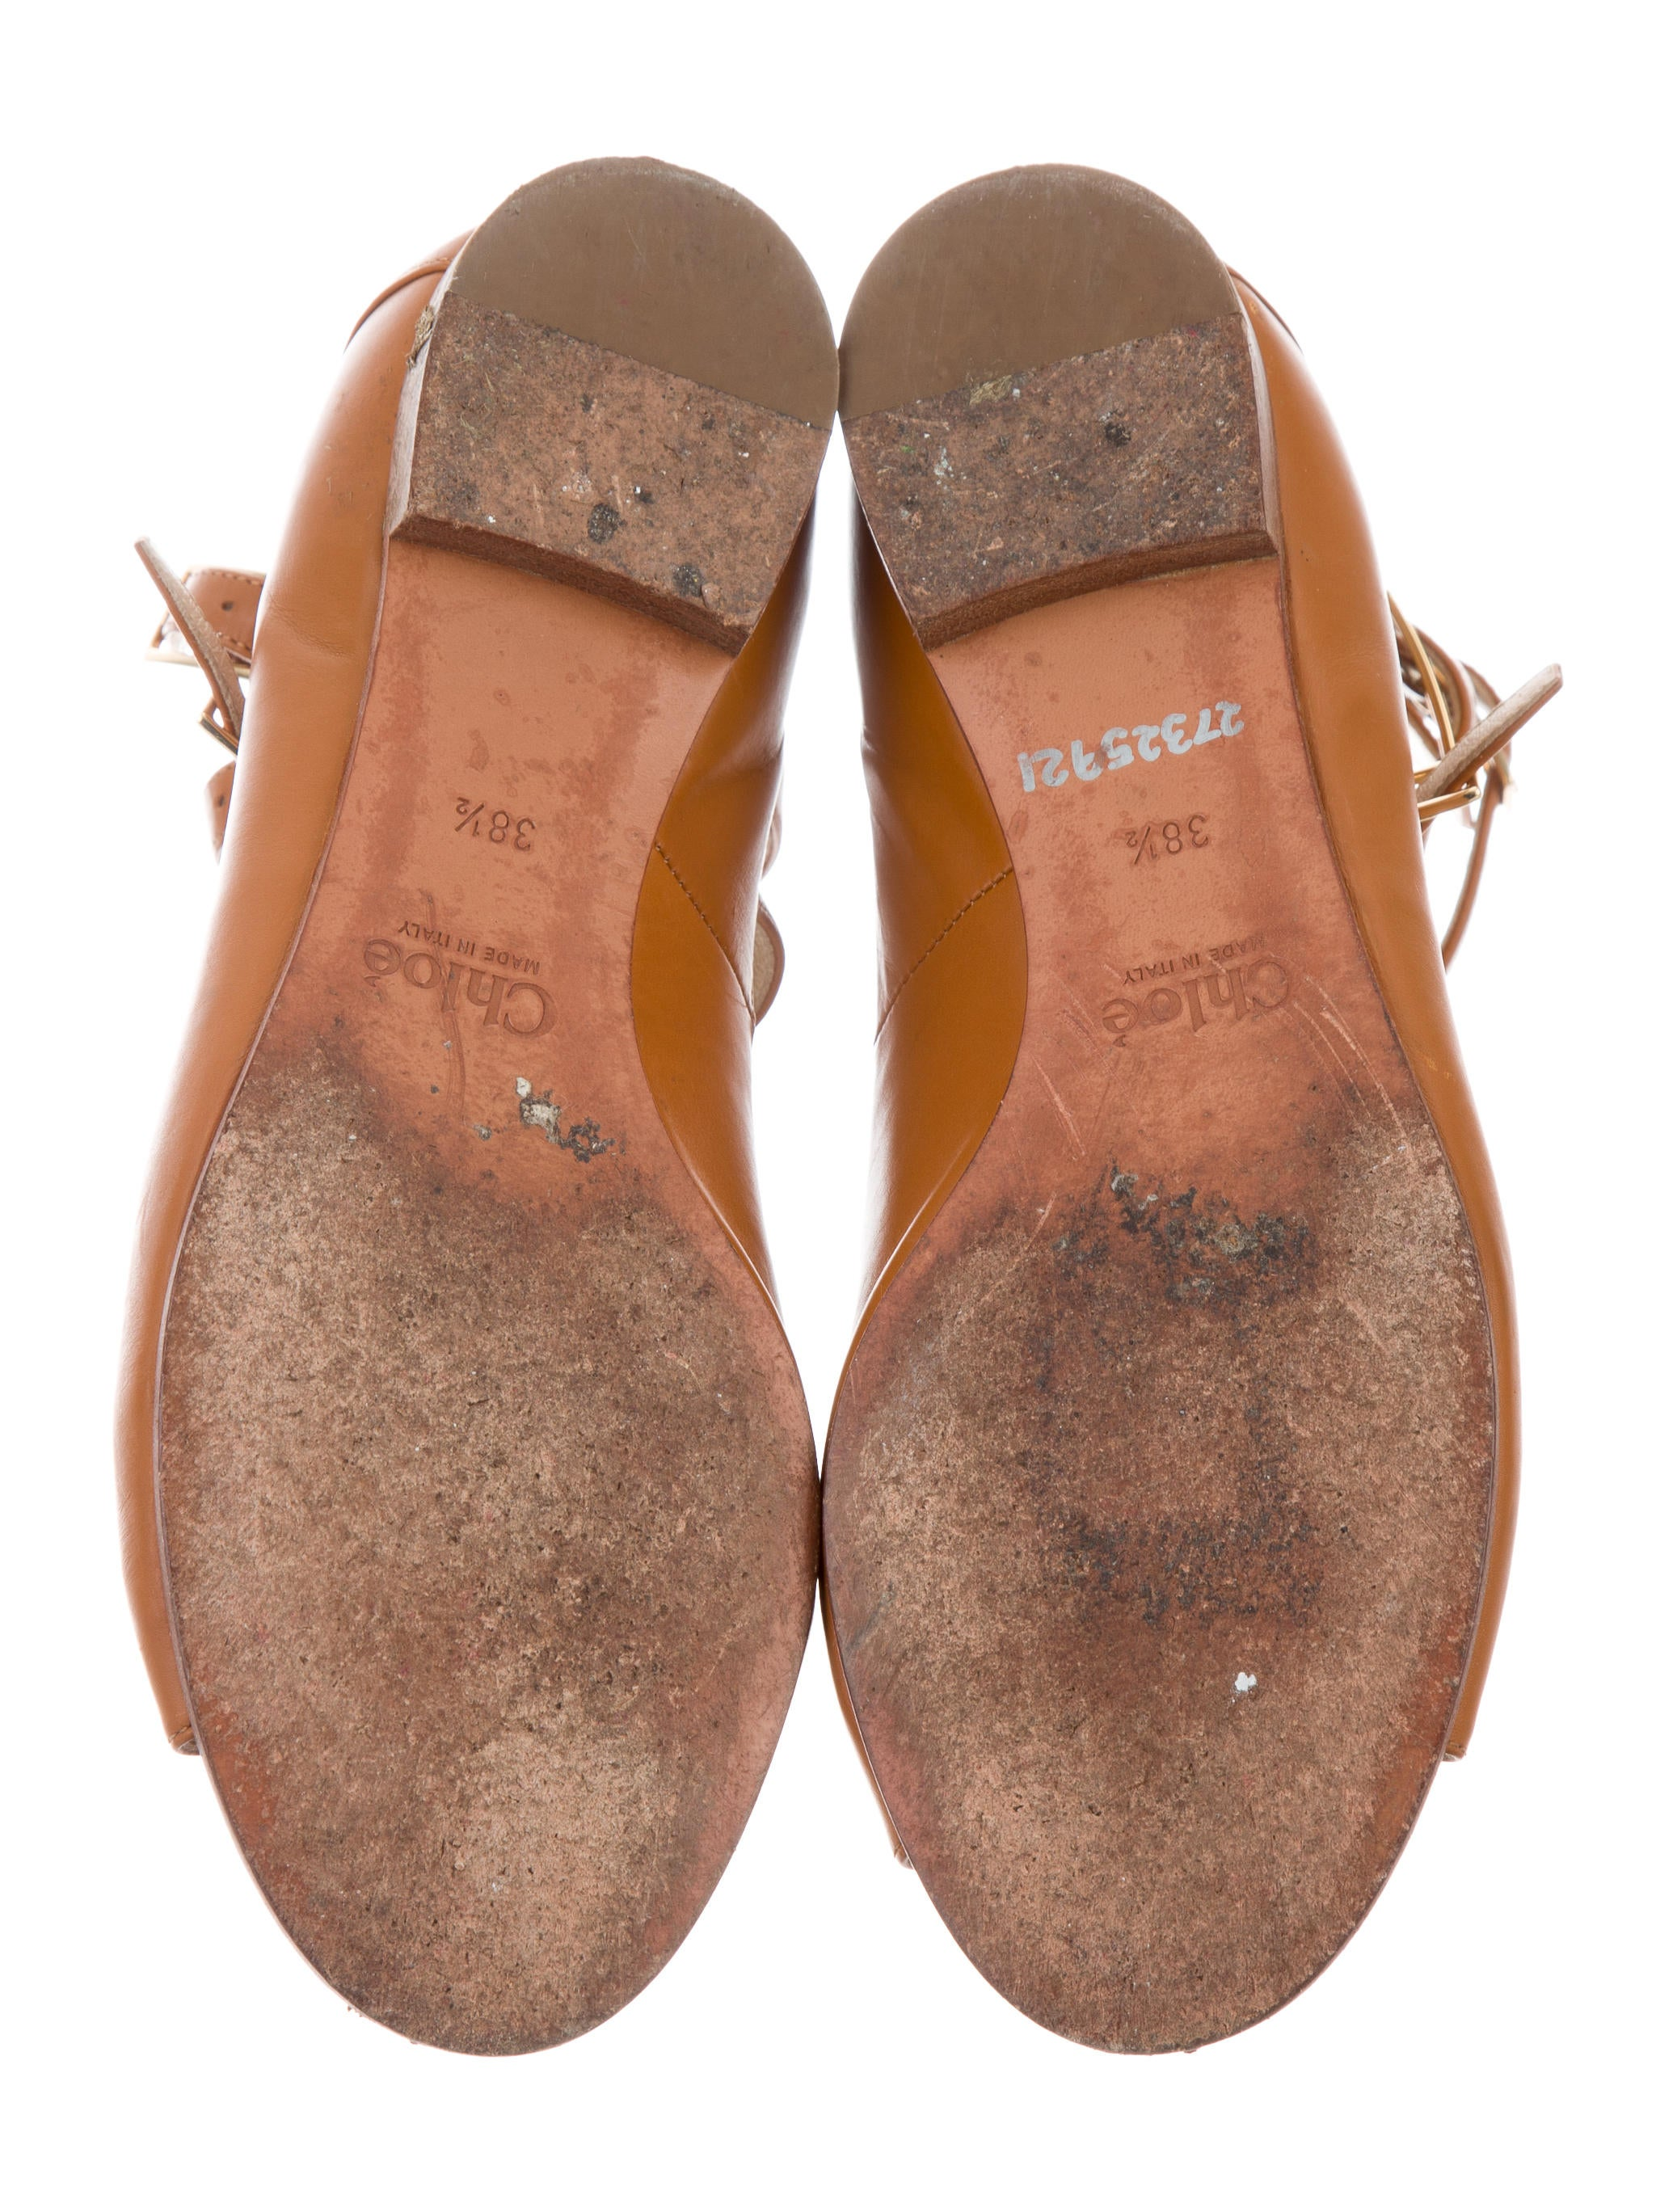 Shop leather peep toe shoes at Neiman Marcus, where you will find free shipping on the latest in fashion from top designers.